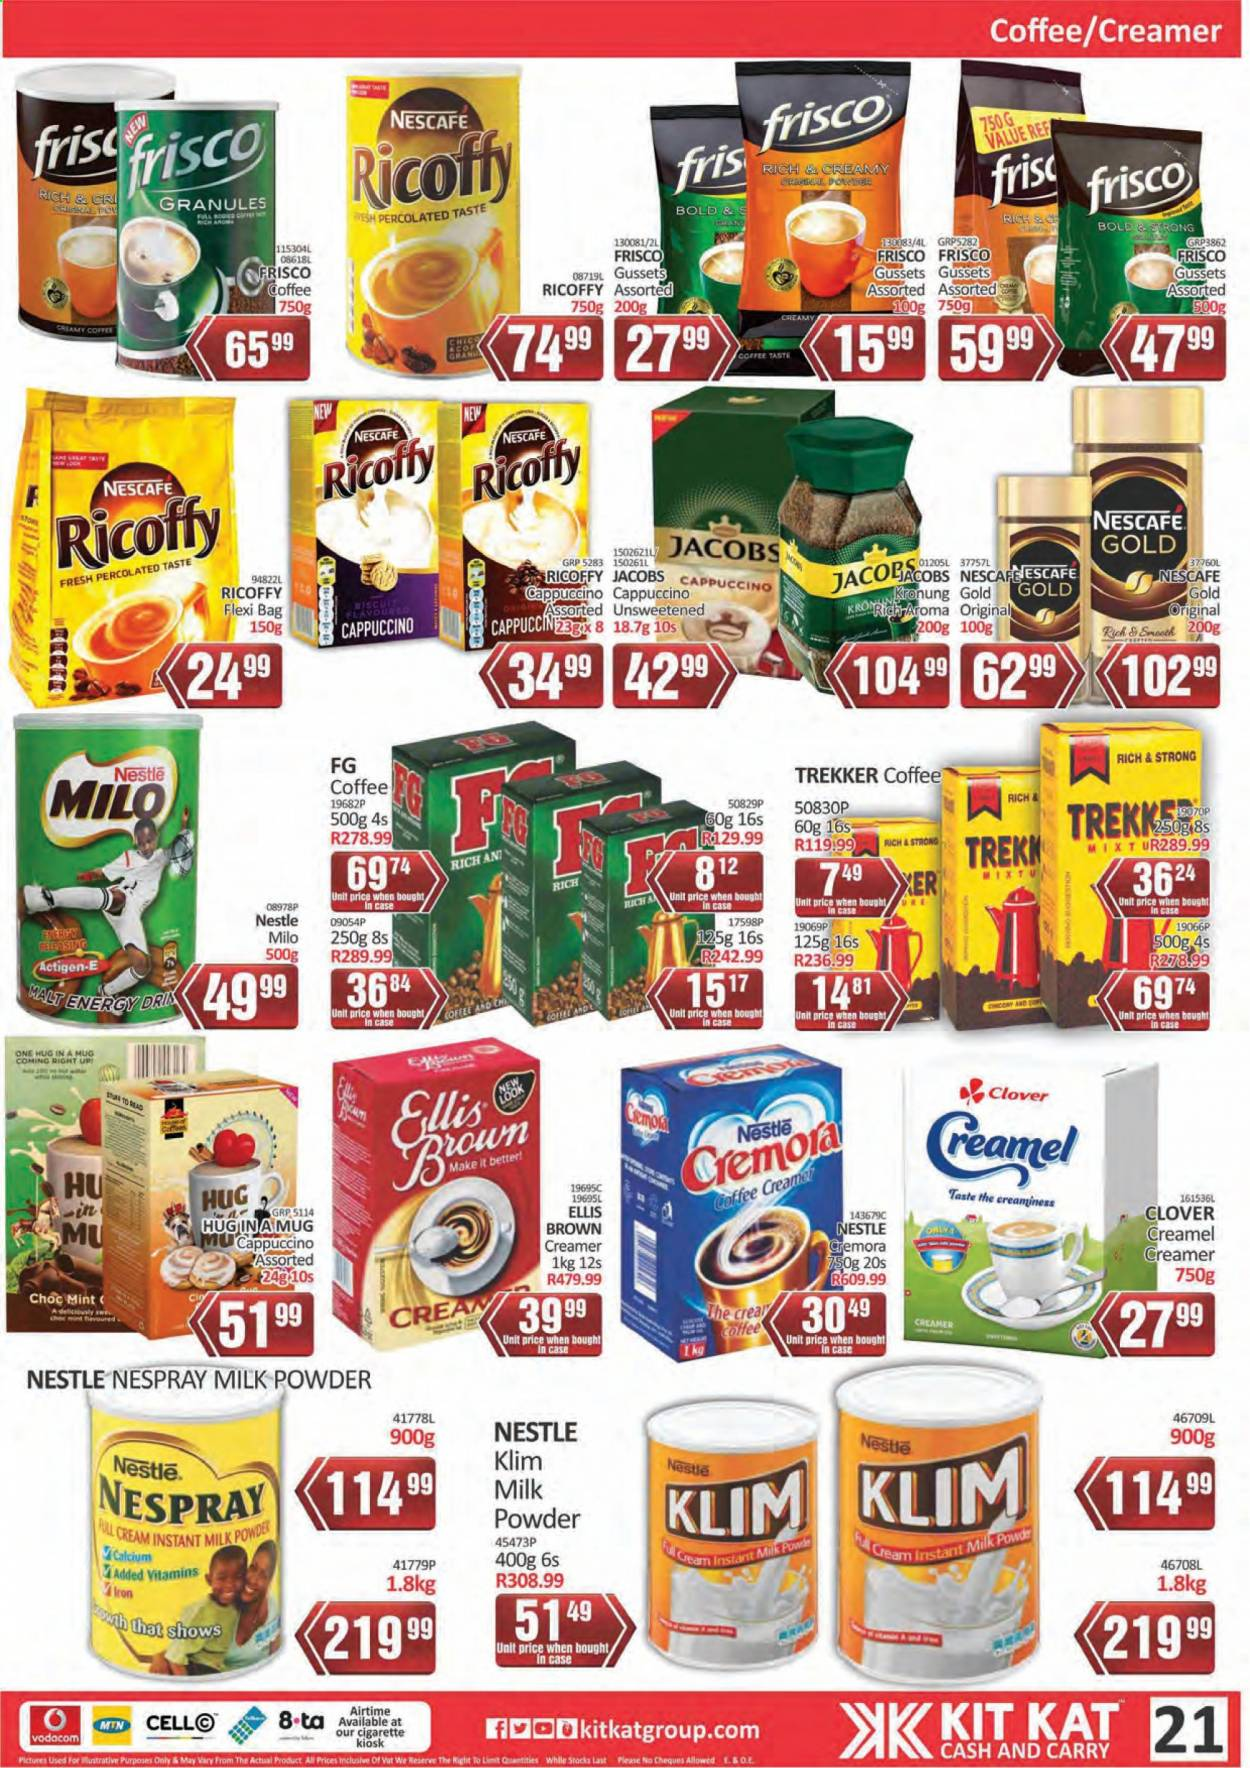 Kit Kat Cash & Carry catalogue  - 02.11.2021 - 05.12.2021. Page 21.